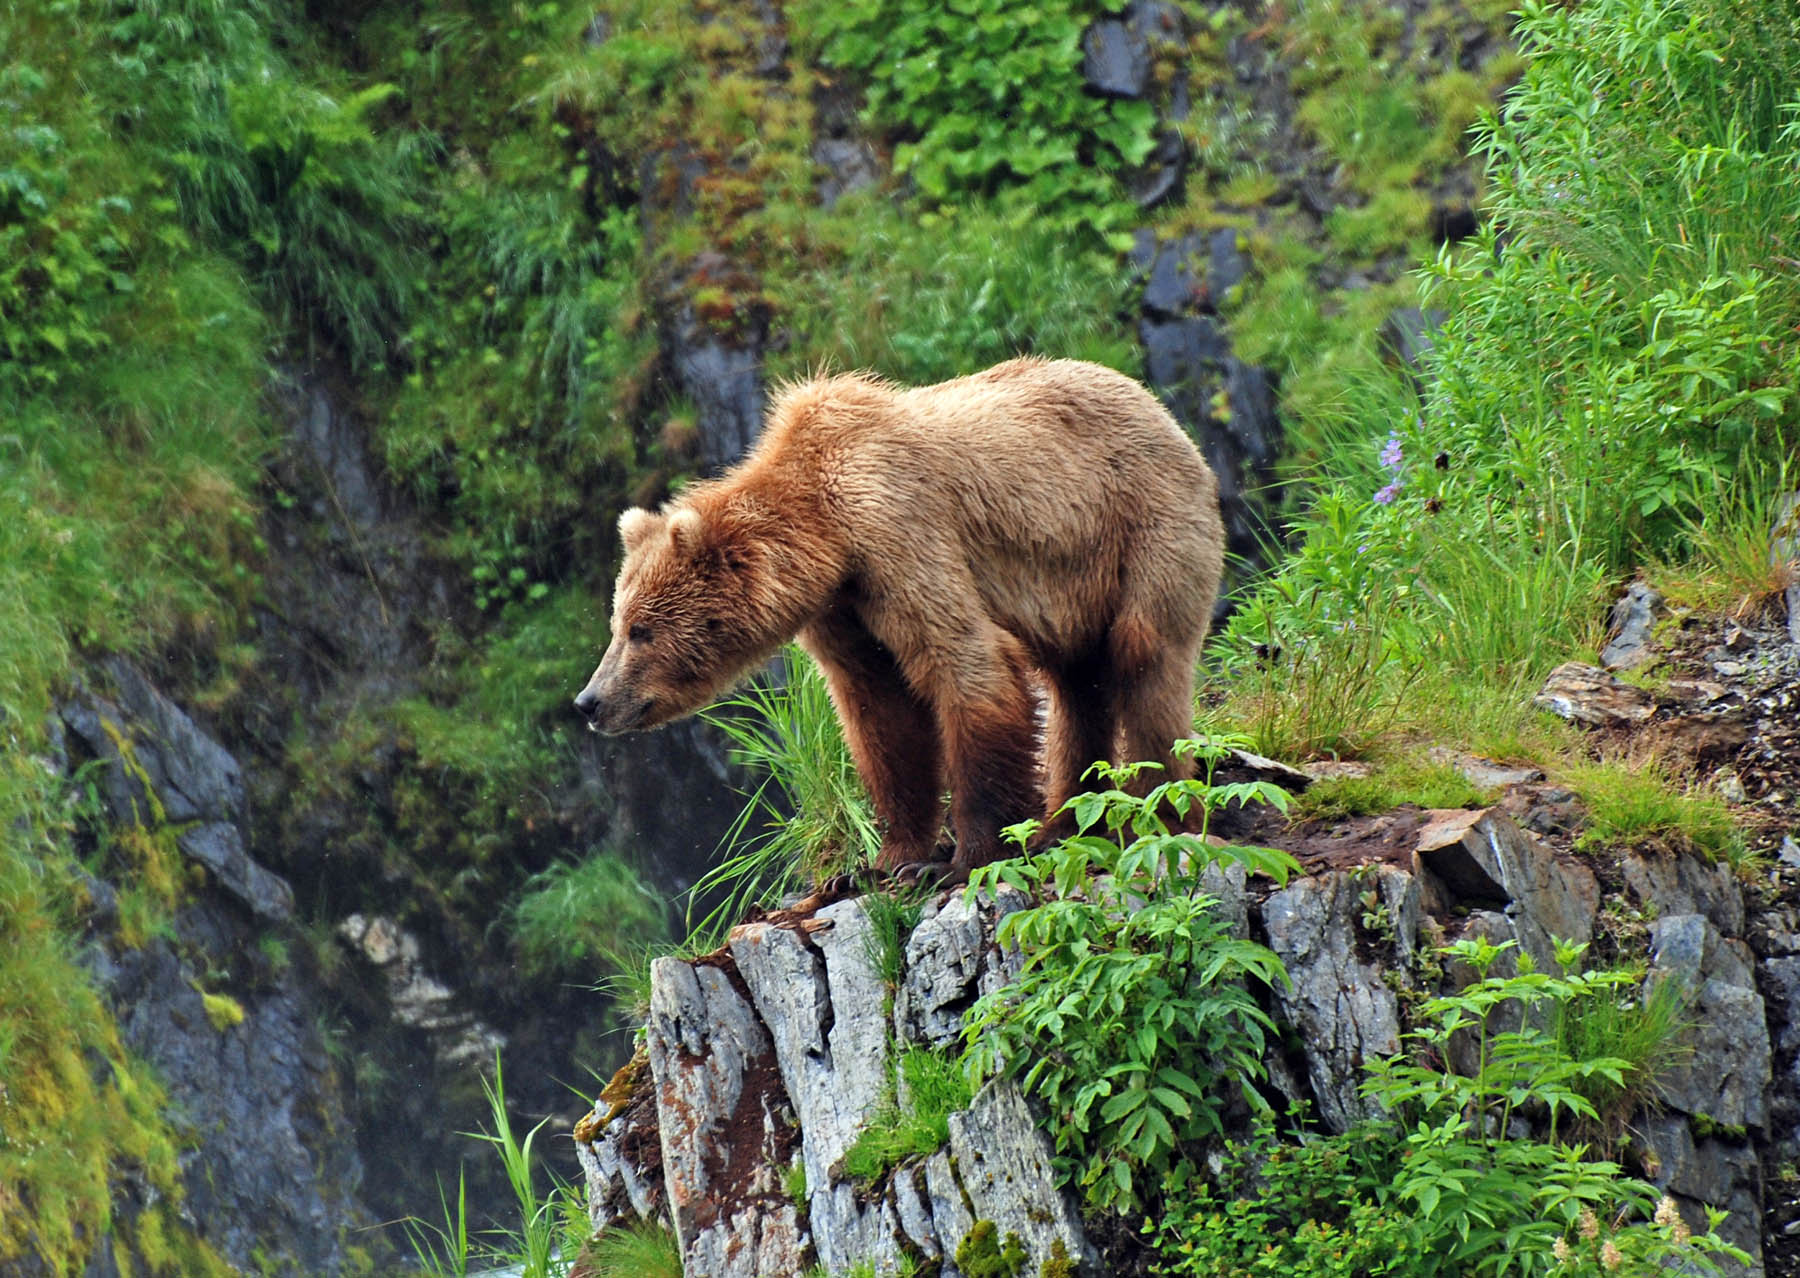 Kodiak brown bear standing on edge of rock.